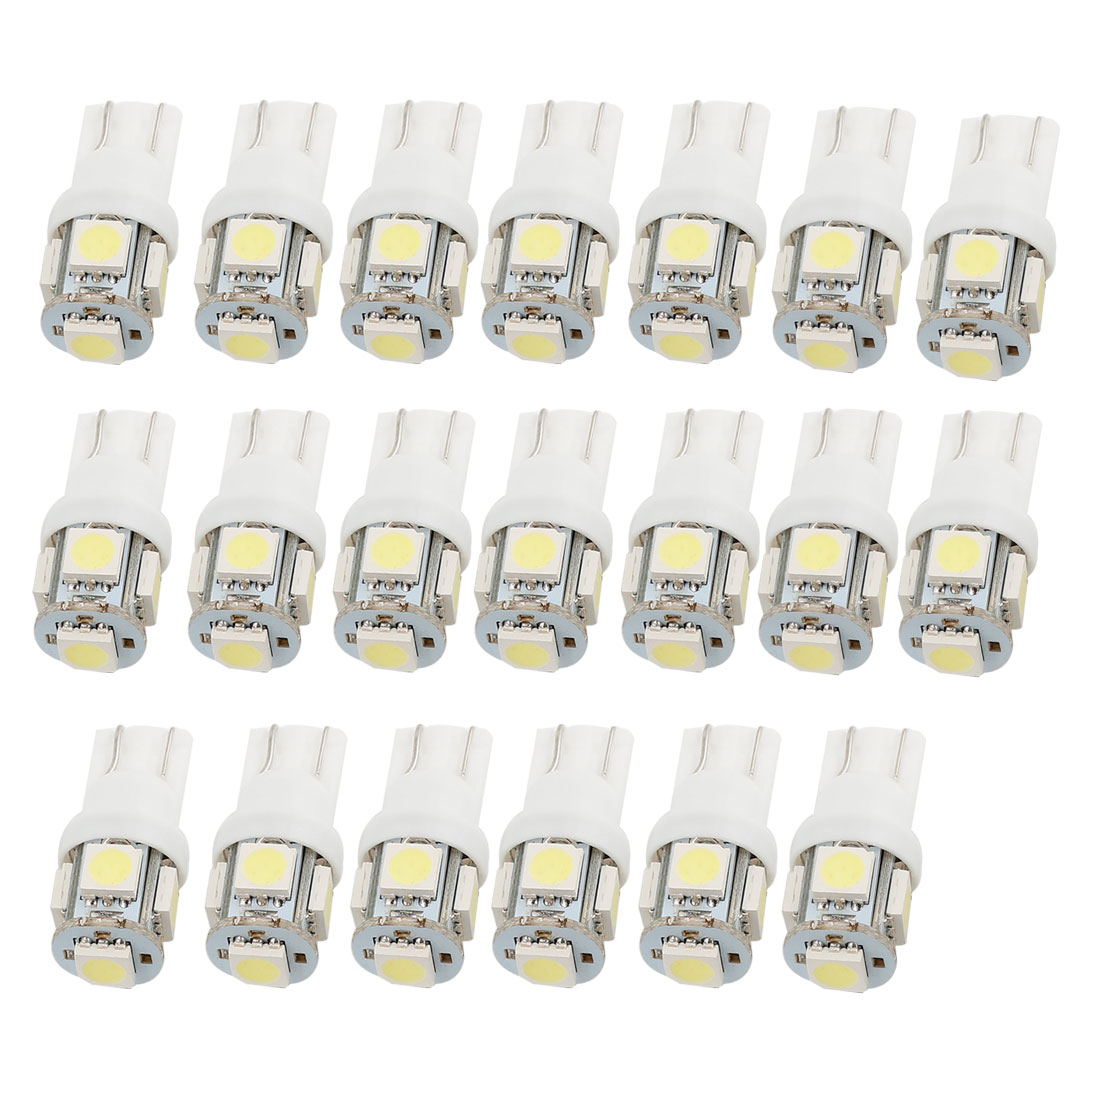 20 Pcs Car T10 White 5050 5 SMD LED Braking Turning Light Wedge Lamps internal